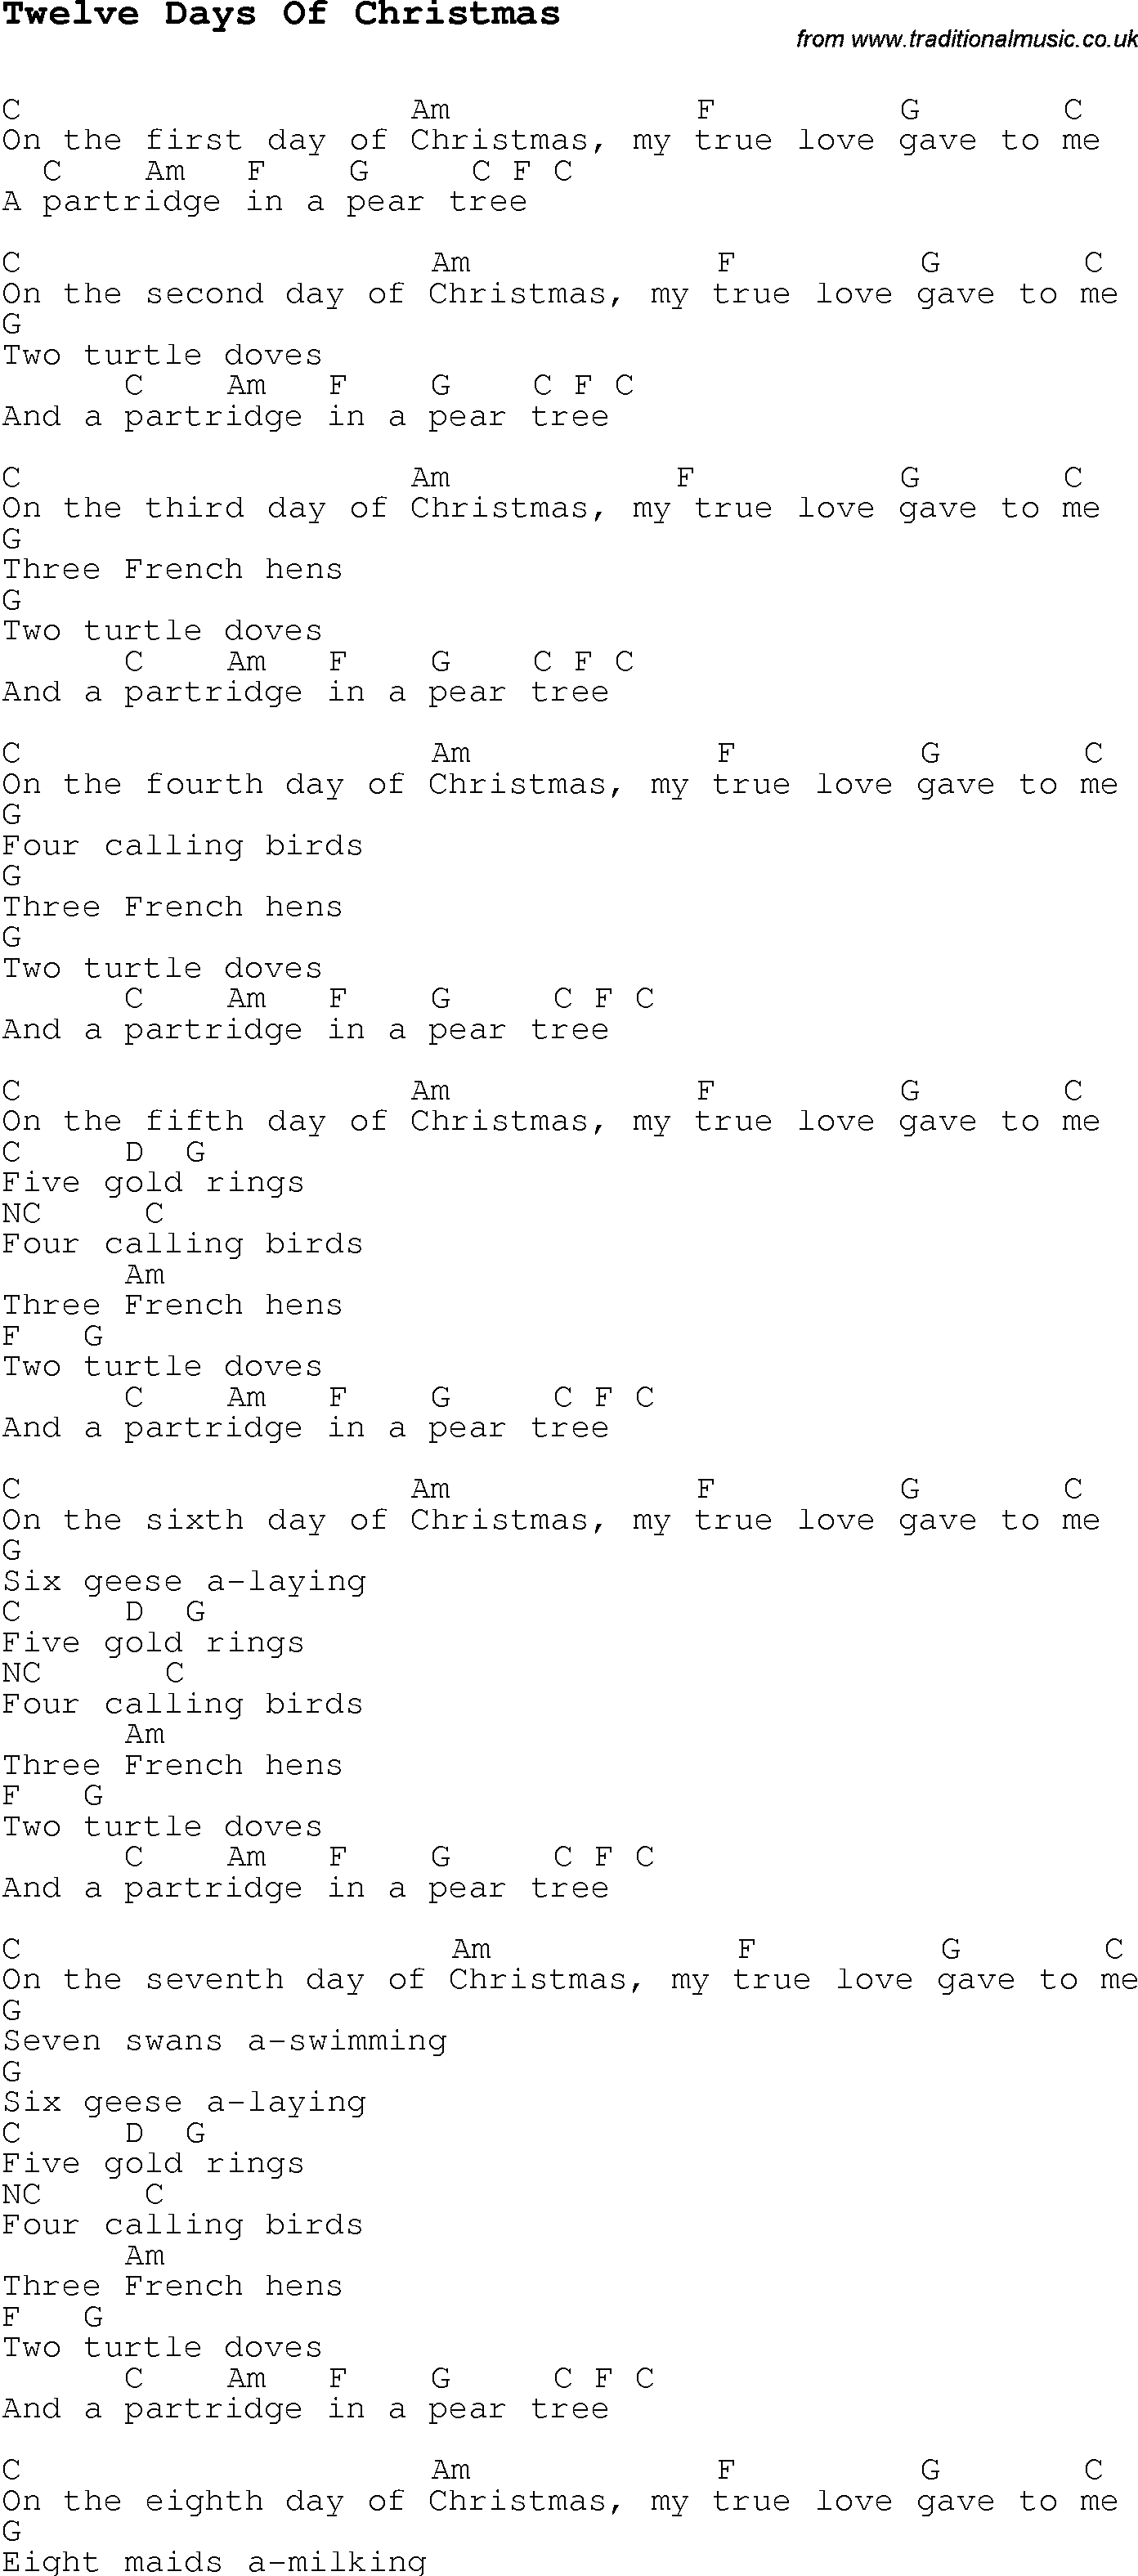 12 Days Of Christmas Lyrics.Christmas Carol Song Lyrics With Chords For Twelve Days Of